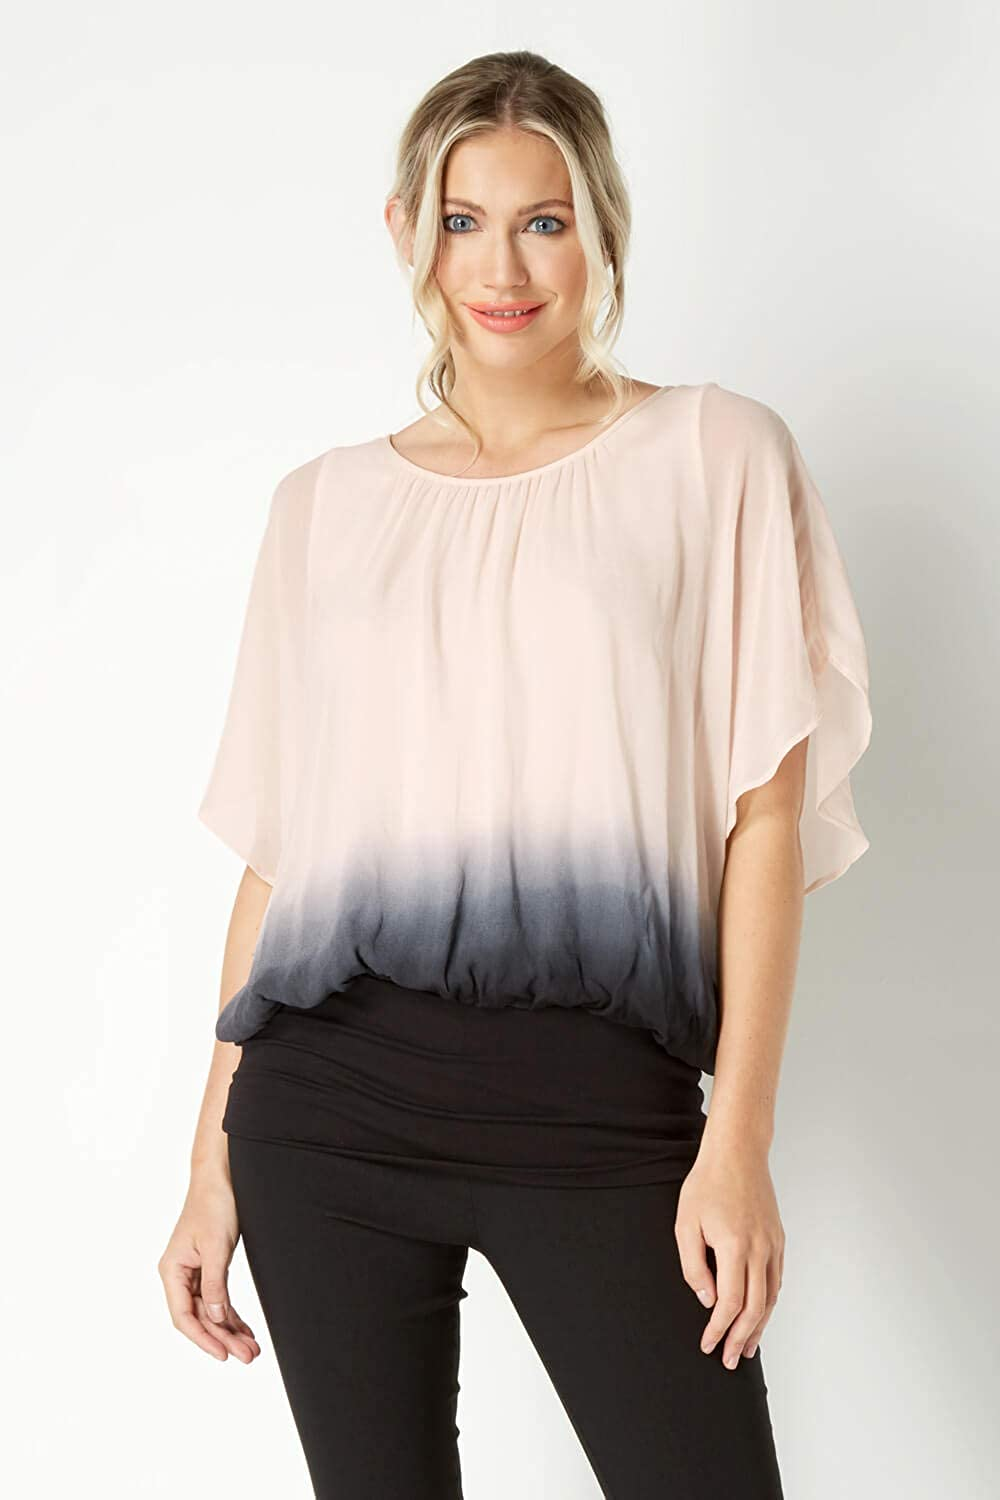 b50b974f9193d Roman Originals Women Ombre 3 4 Sleeve Top - Ladies Round Neck Going Out  Party Cocktails Evening Dinner Date Hen Party Wedding Blouses Tops   Amazon.co.uk  ...